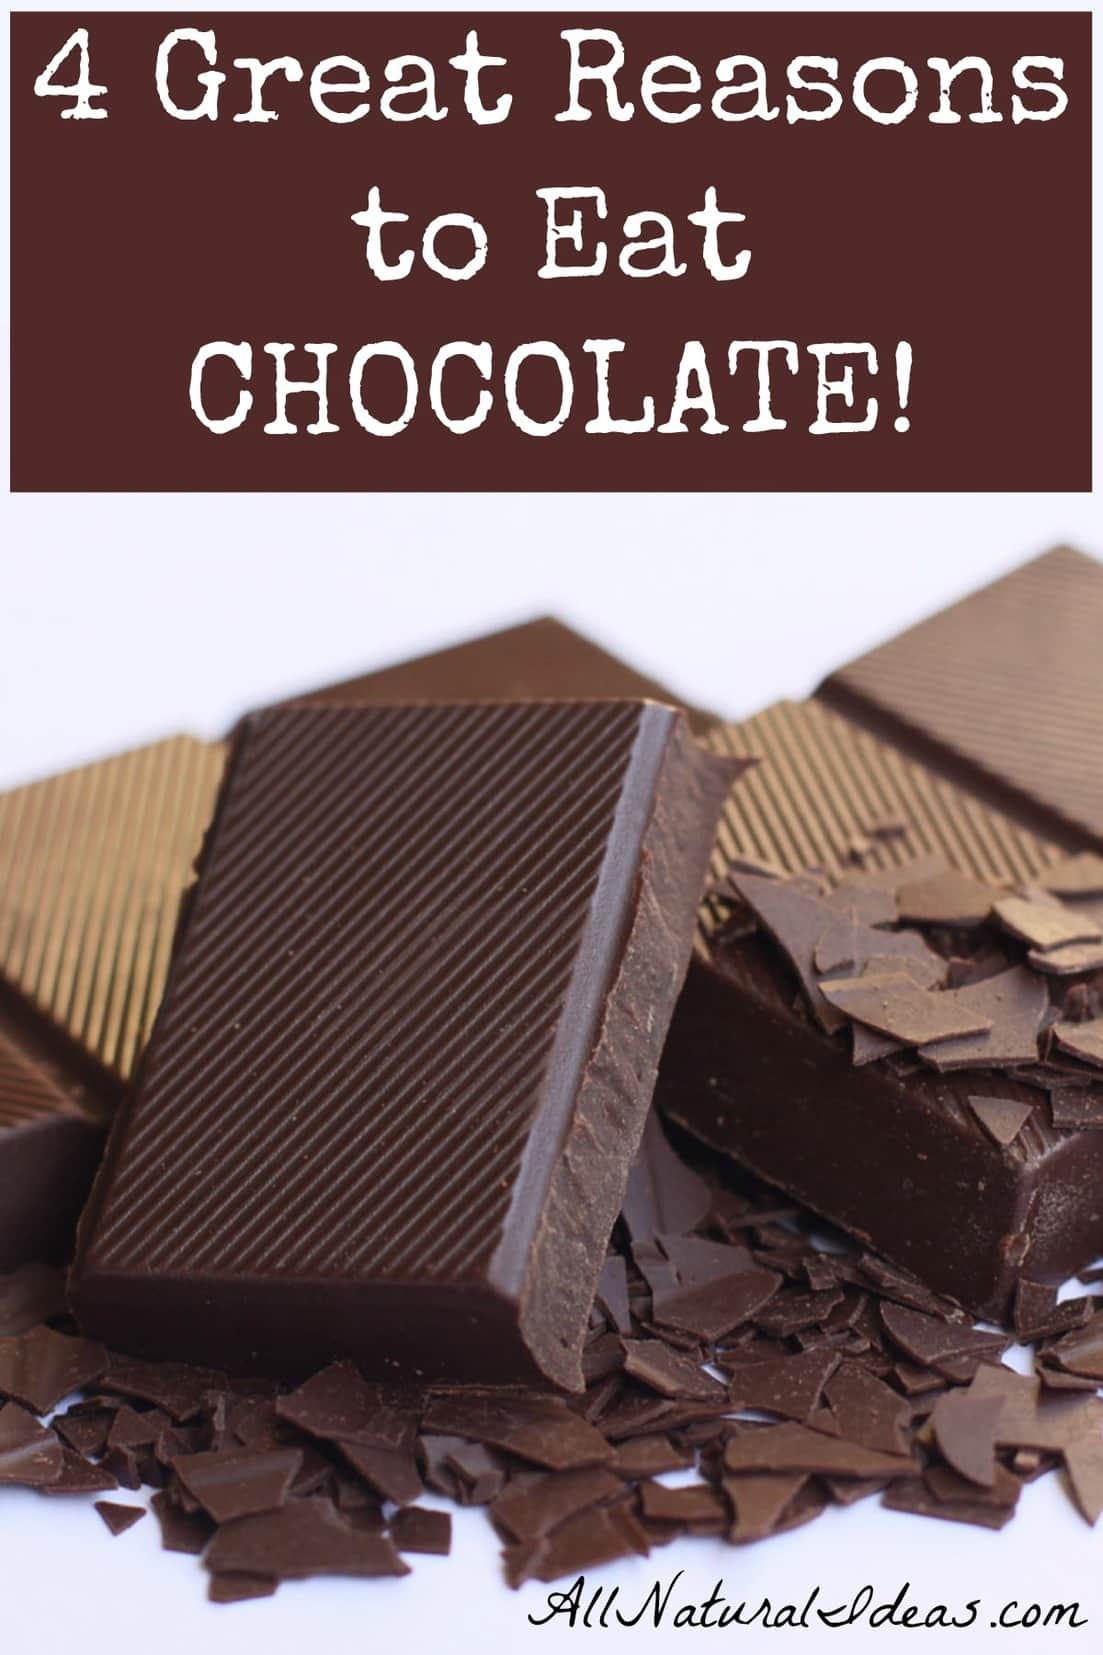 Chocolate. Many of us reach it during needs of comfort. It is a common gift to give on special holidays. Are you aware of the chocolate health benefits?